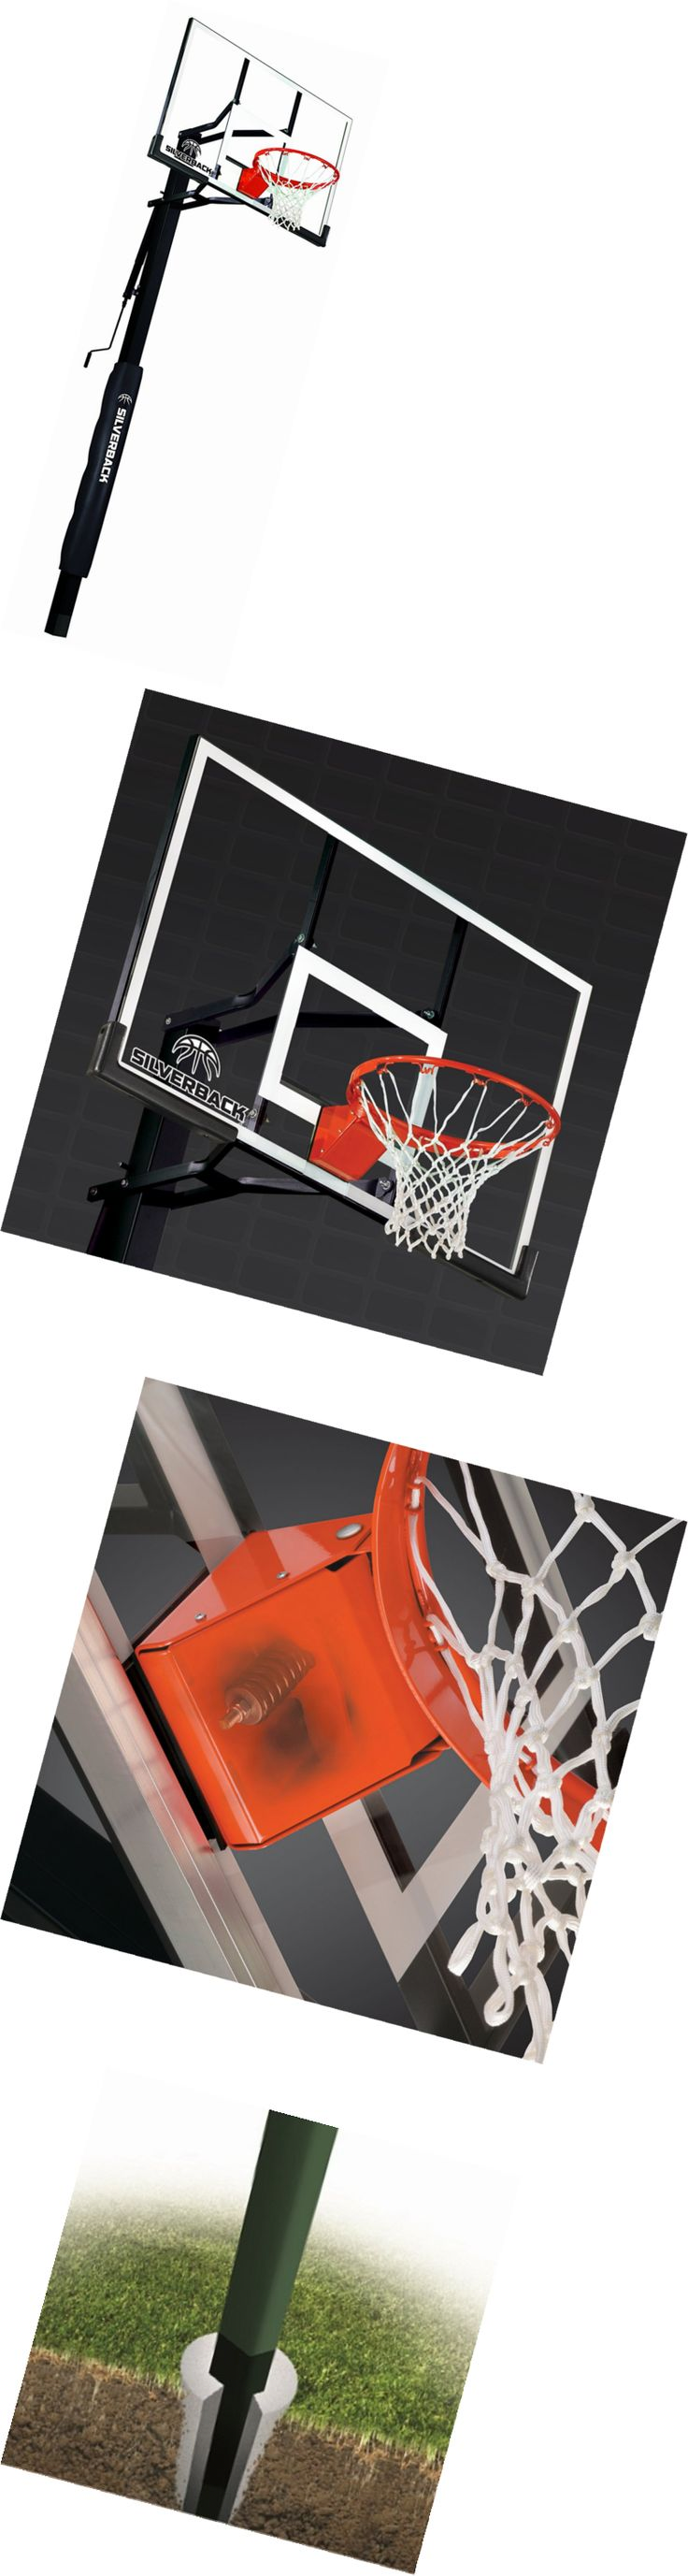 """Backboard Systems 21196: Silverback 54"""" In-Ground Basketball System With Tempered Glass Backboard -> BUY IT NOW ONLY: $700.97 on eBay!"""